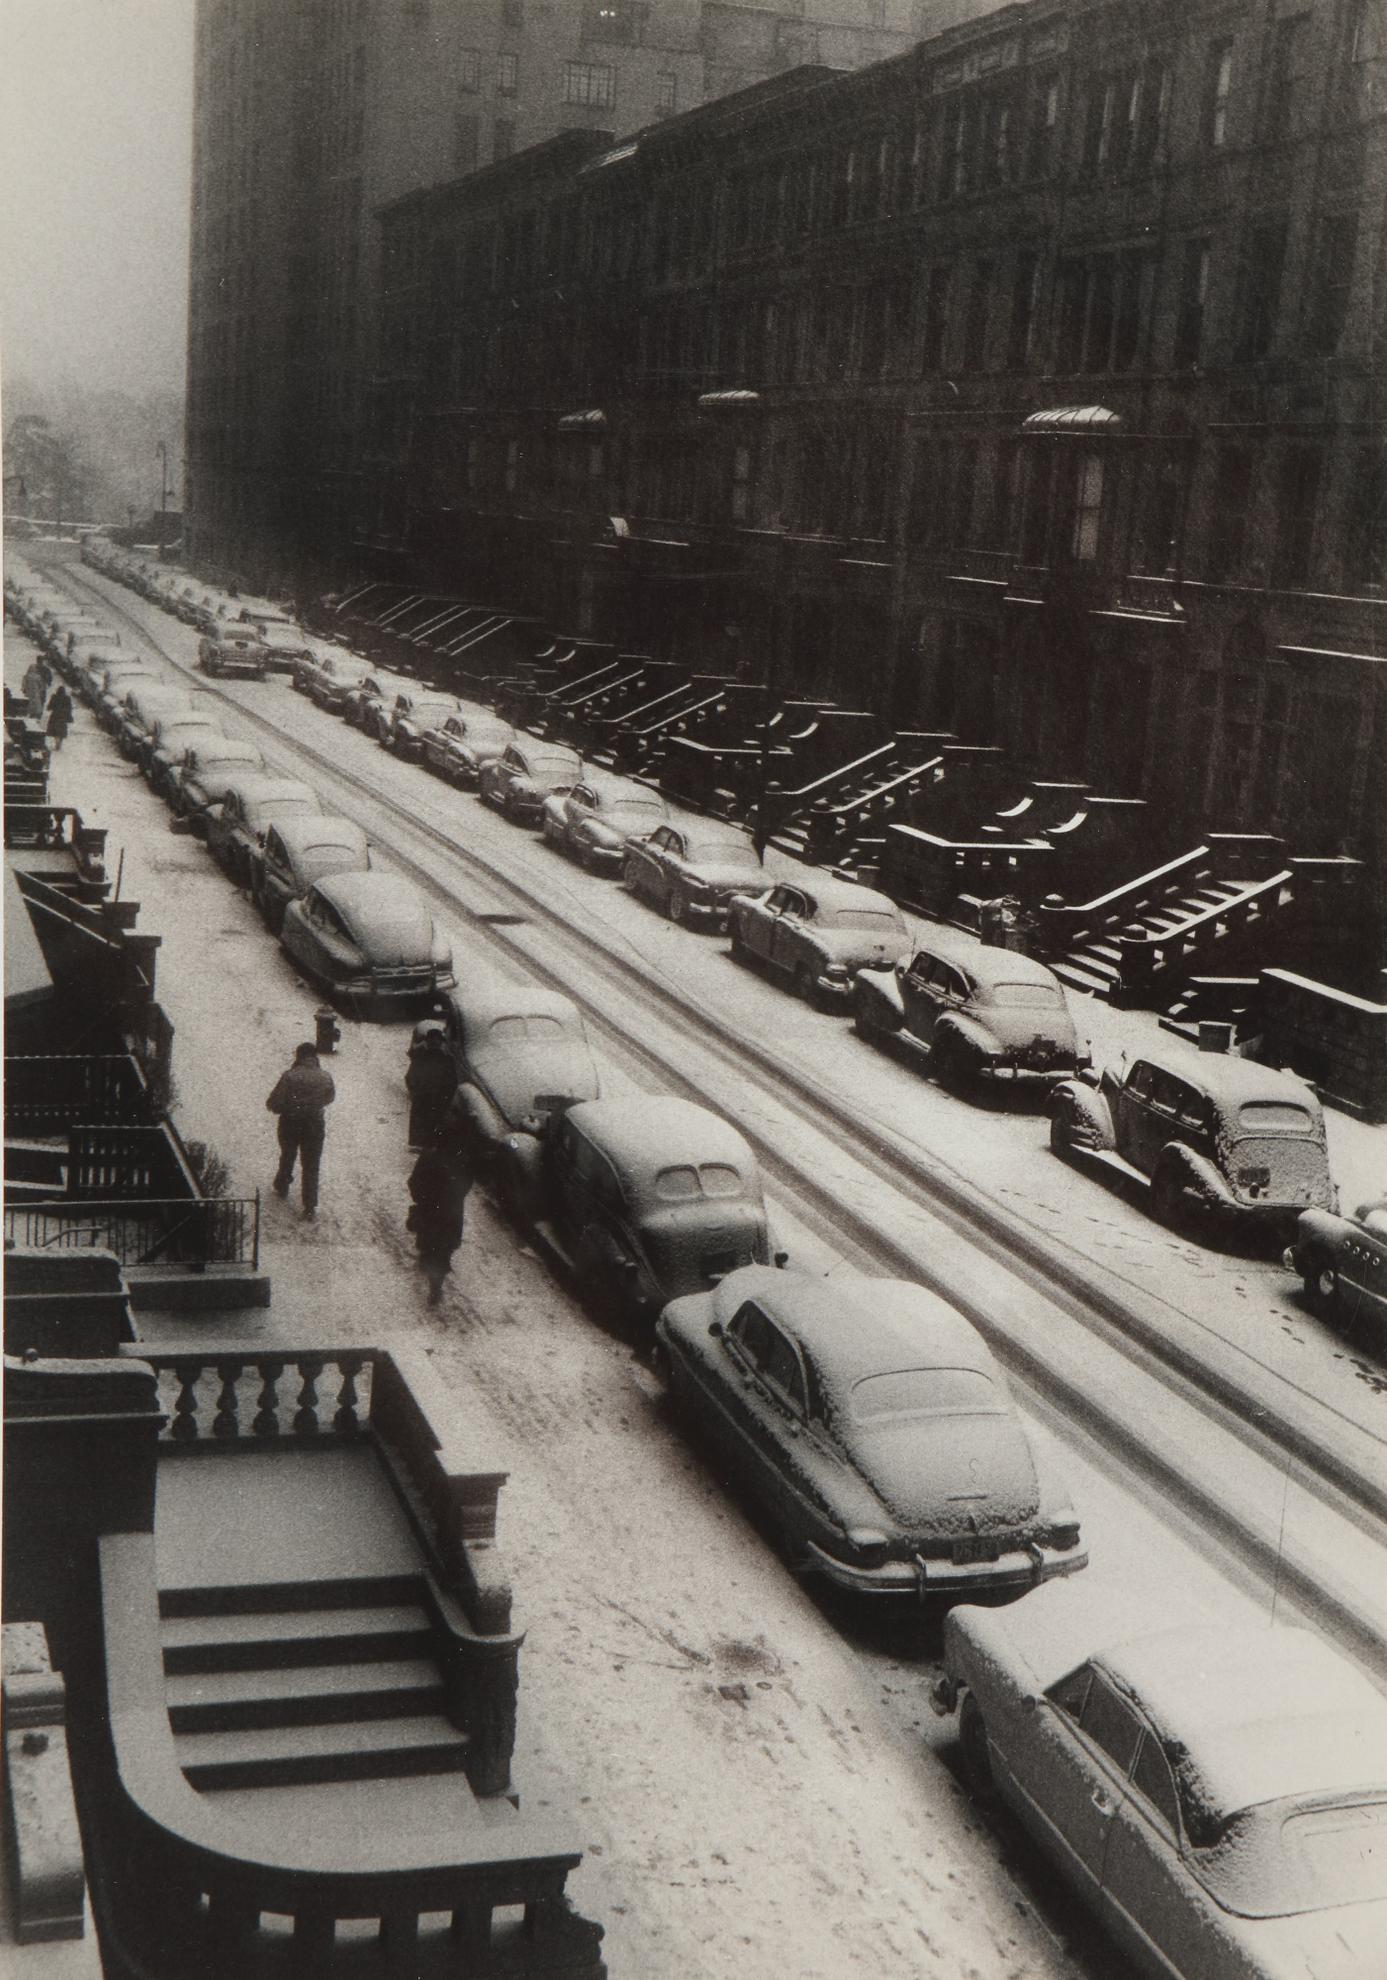 Ruth Orkin-Cars In Snow, West 88Th Street, New York City-1952